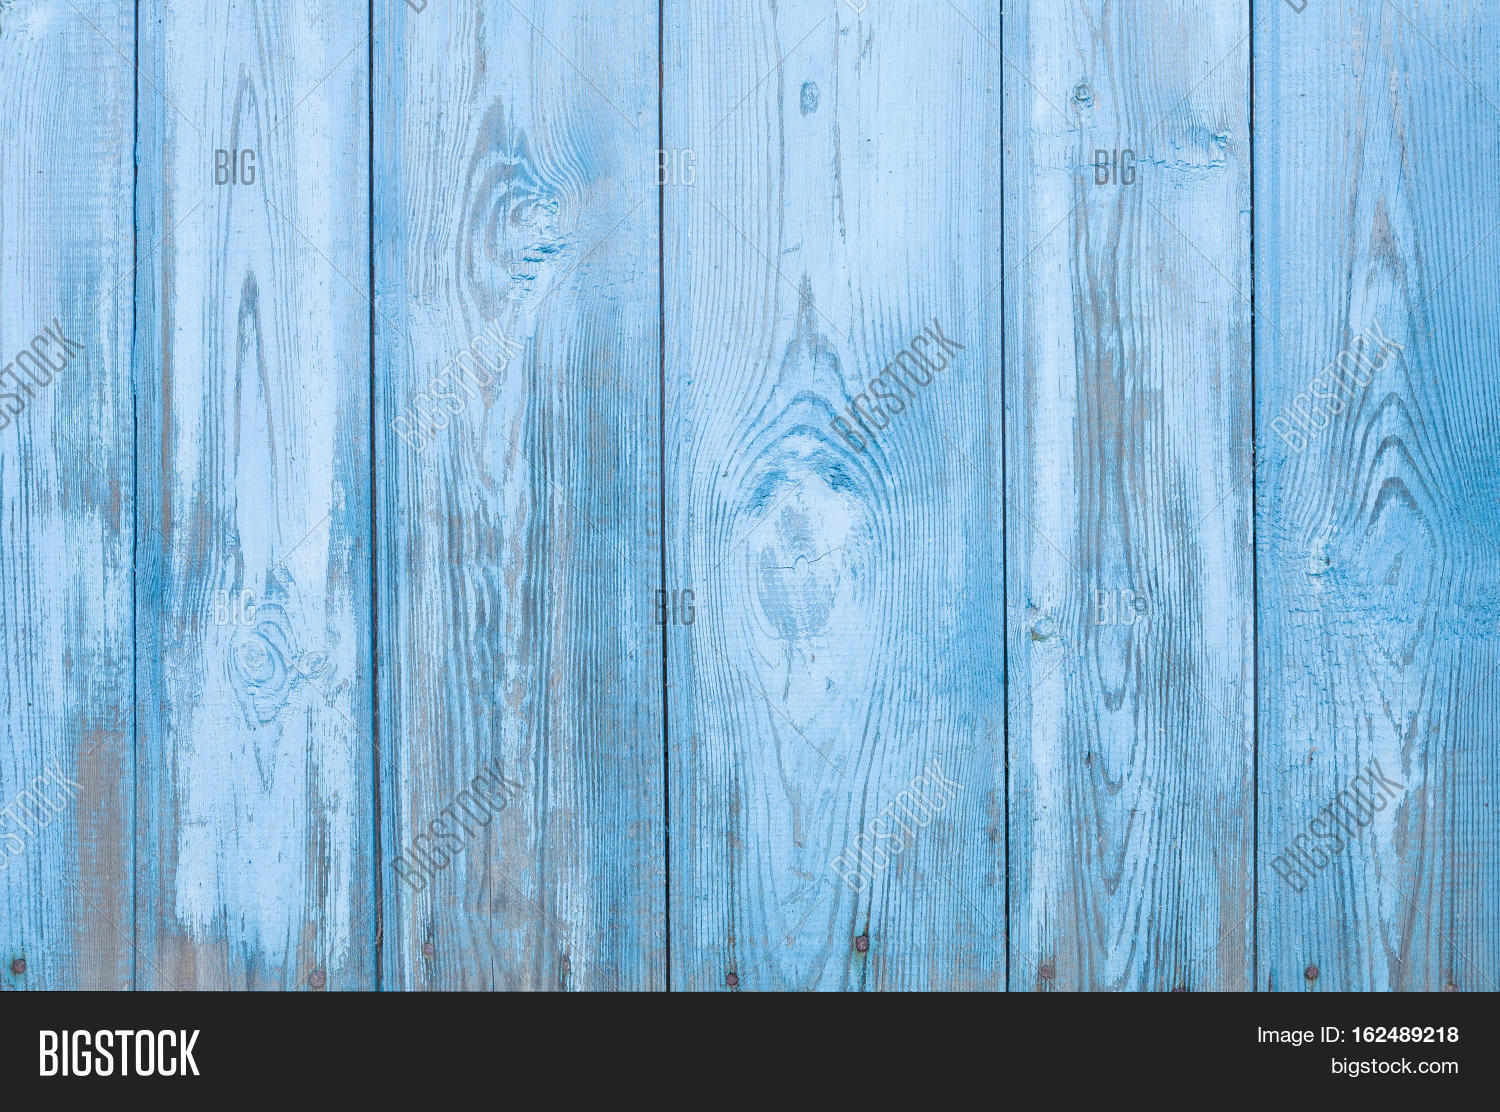 Natural Rustic Old Wood Board Wall Shabby Blue Color Background Wooden Vintage Style Texture